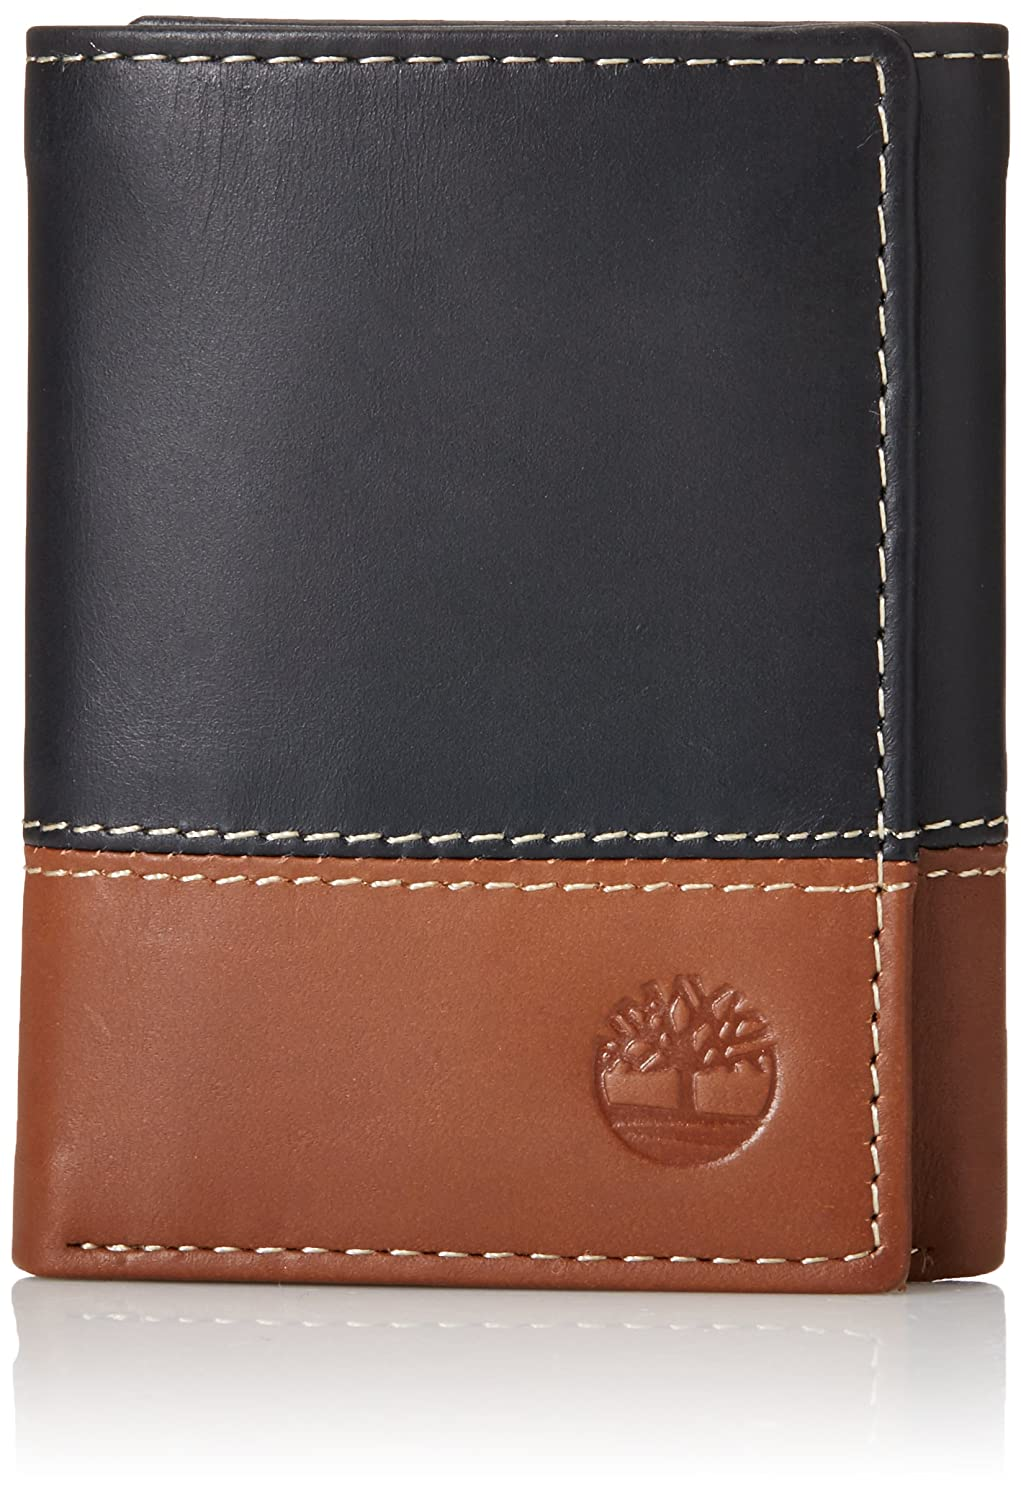 b64ed1bf1a14 Timberland Men s Hunter Colorblocked Trifold Wallet, Black Brown, One Size   Amazon.in  Bags, Wallets   Luggage